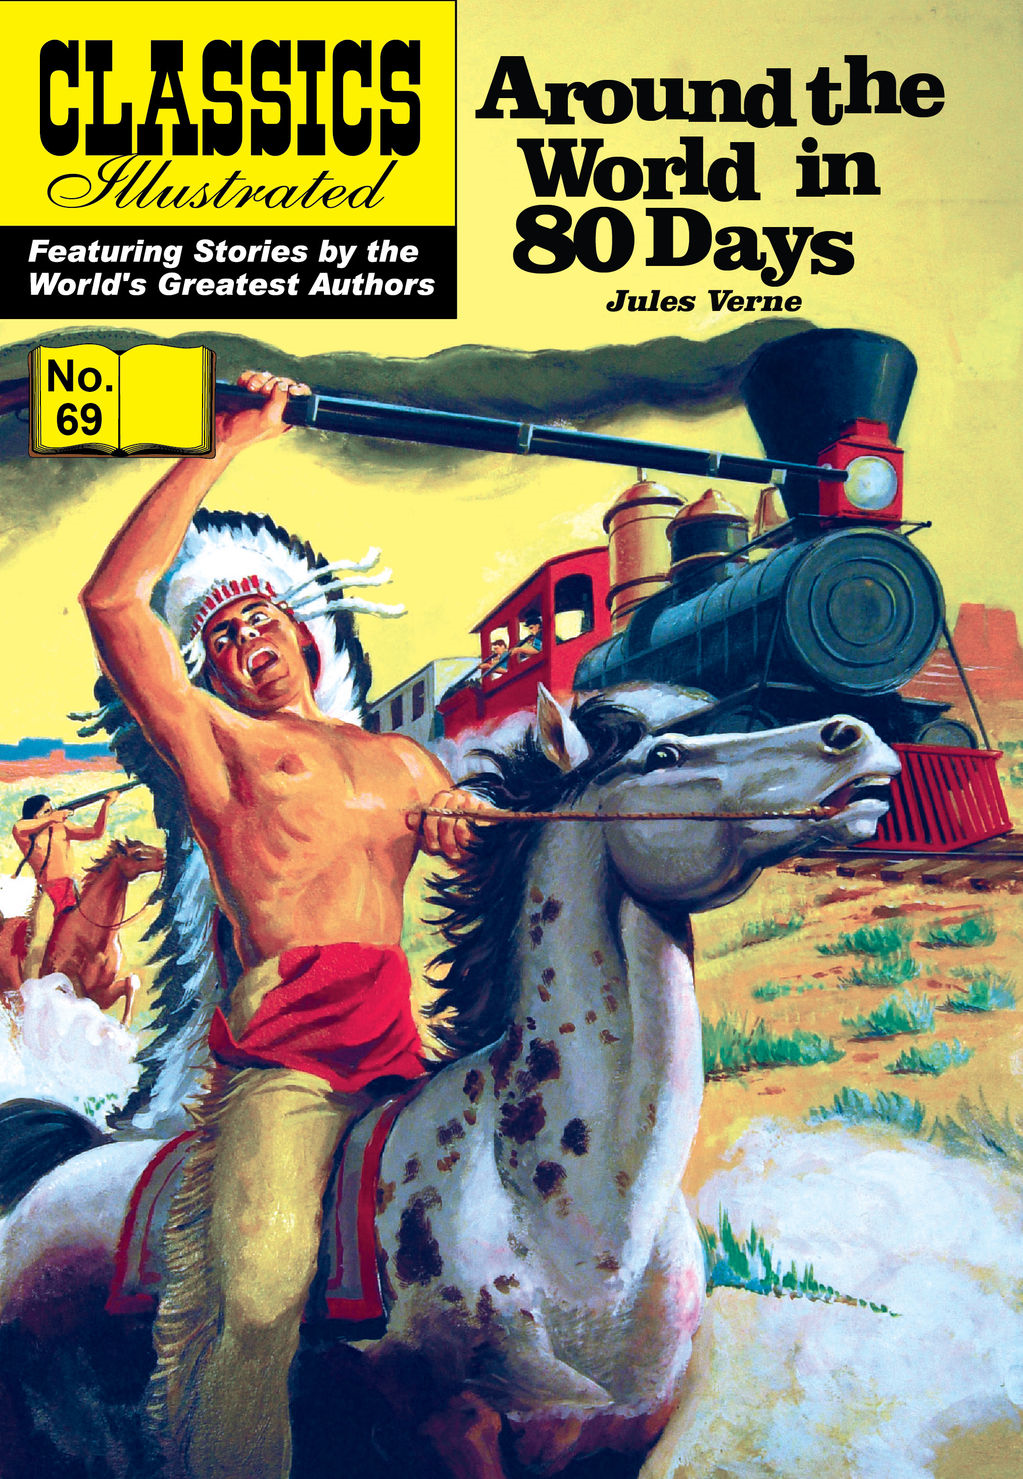 Around the World in 80 Days - Classics Illustrated #69